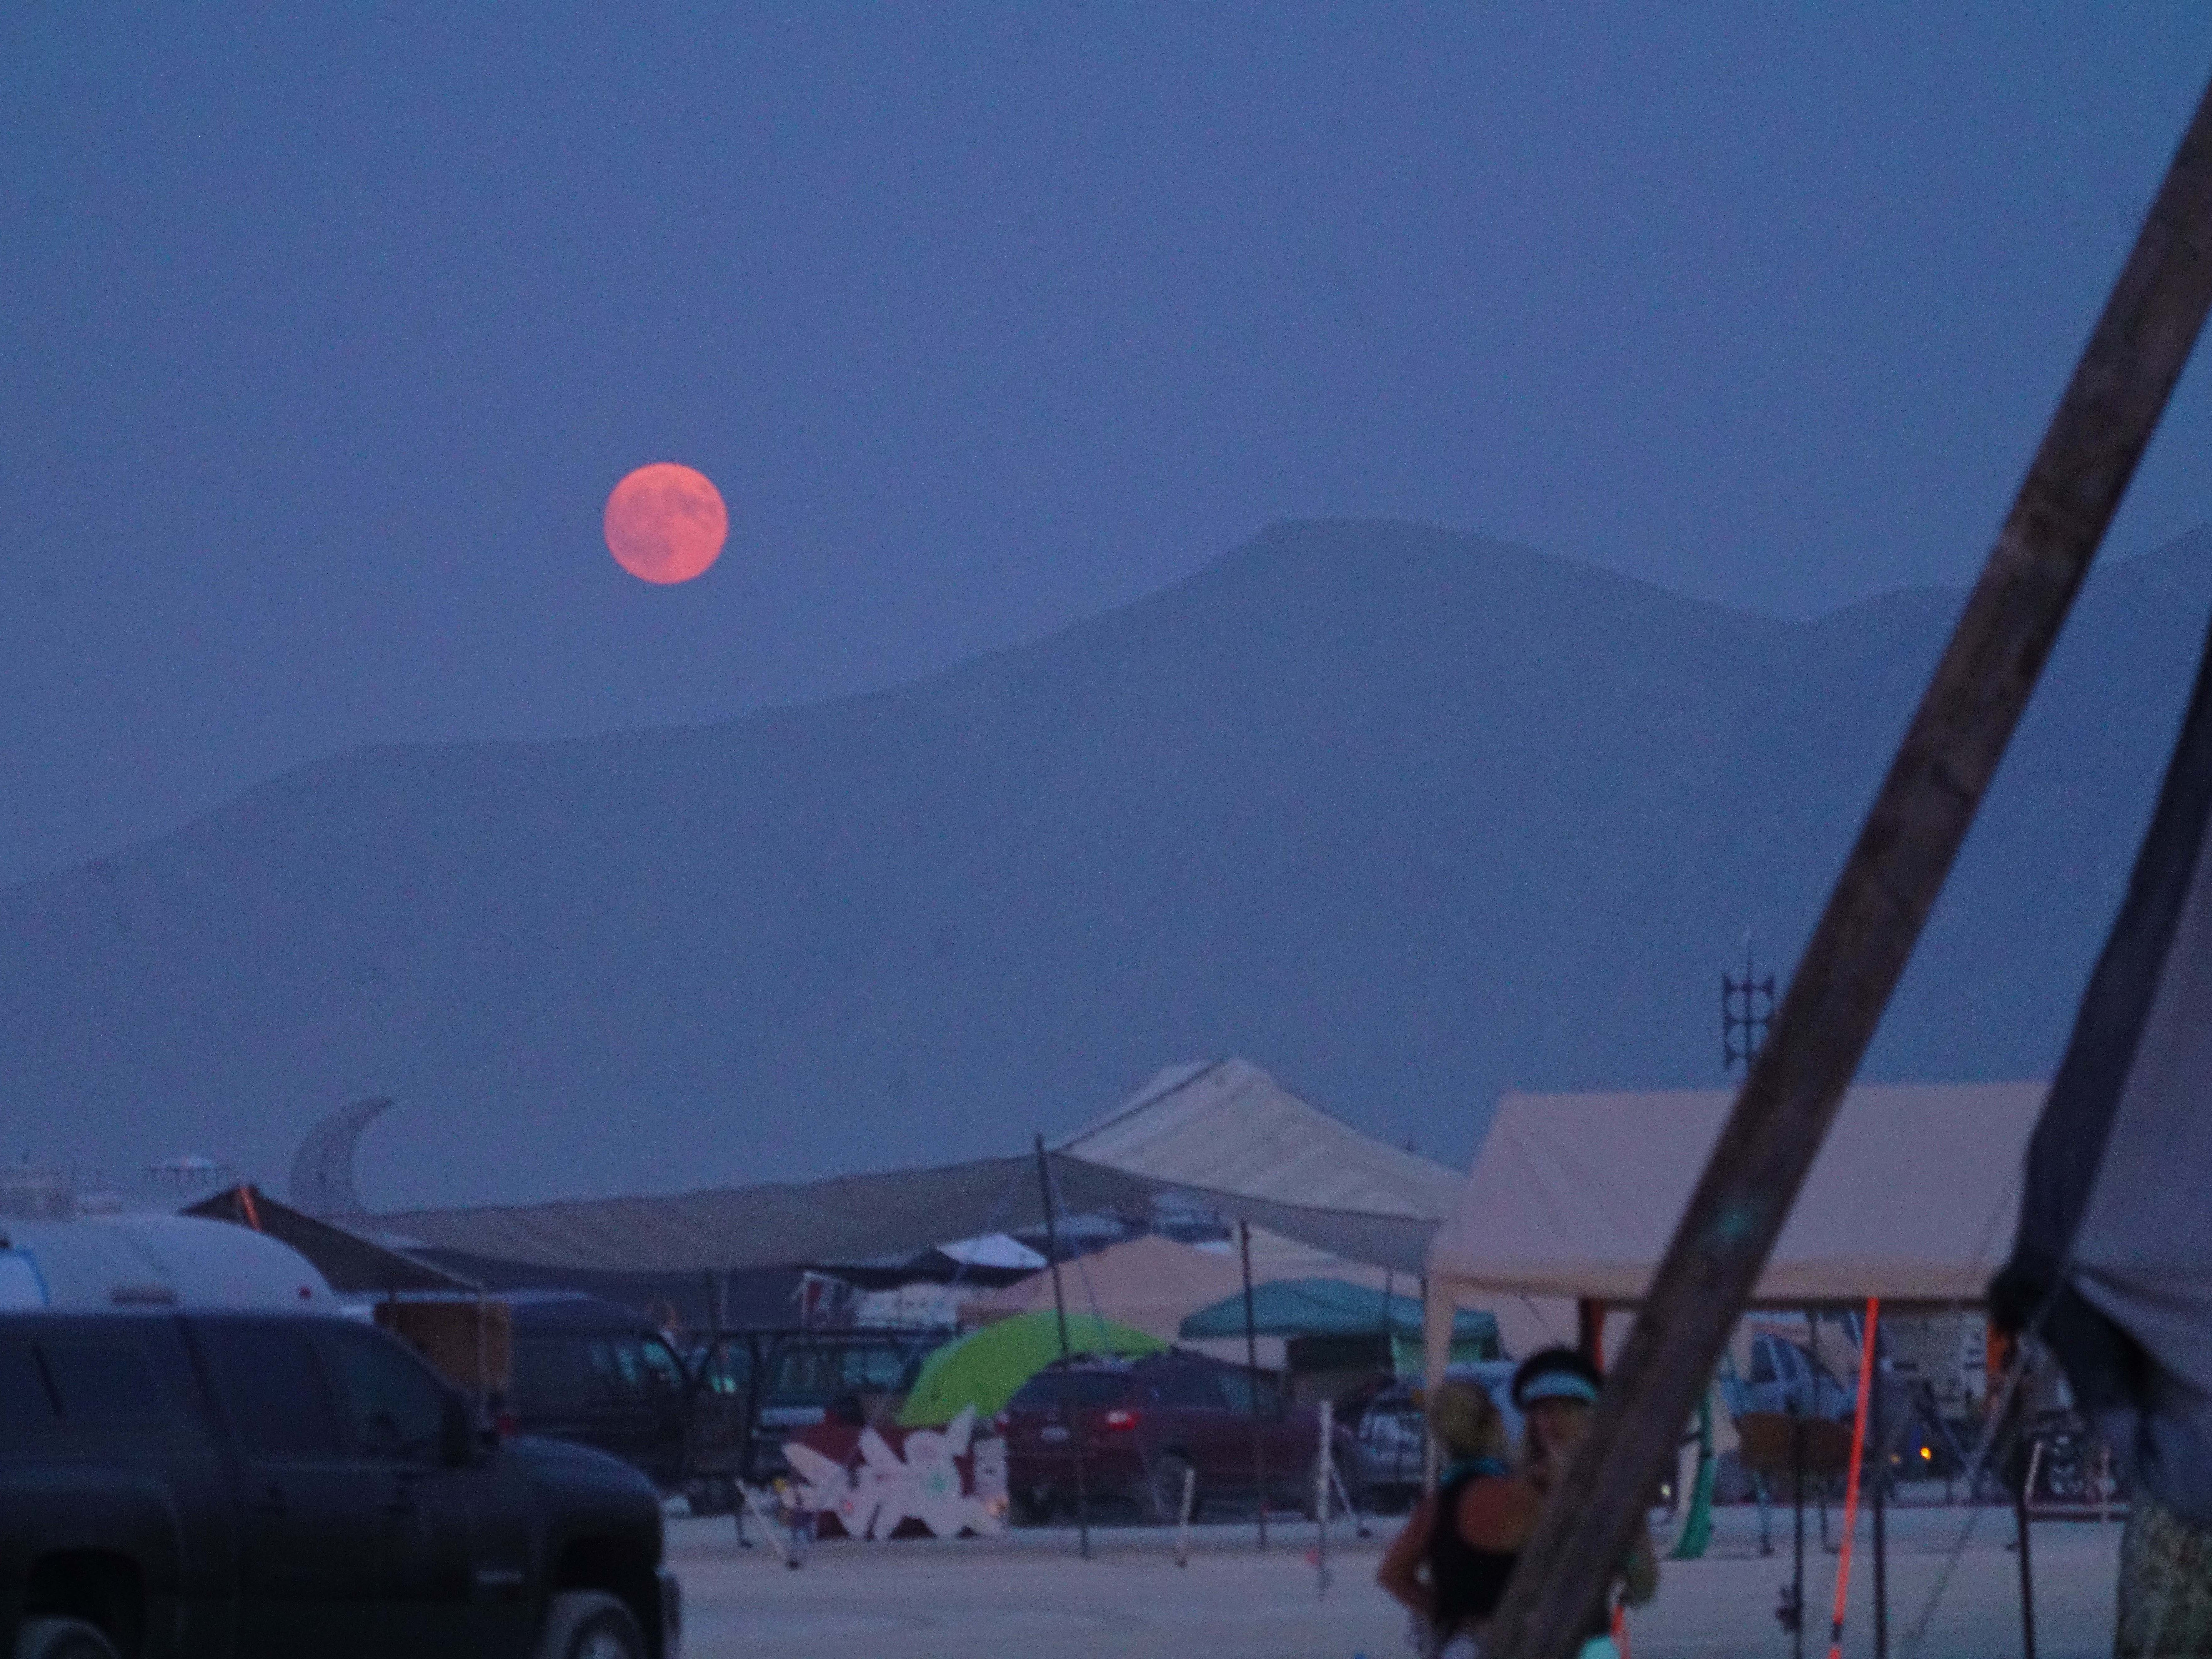 The full moon rises over the Burning Man festival site in northern Nevada, Aug. 26, 2018.